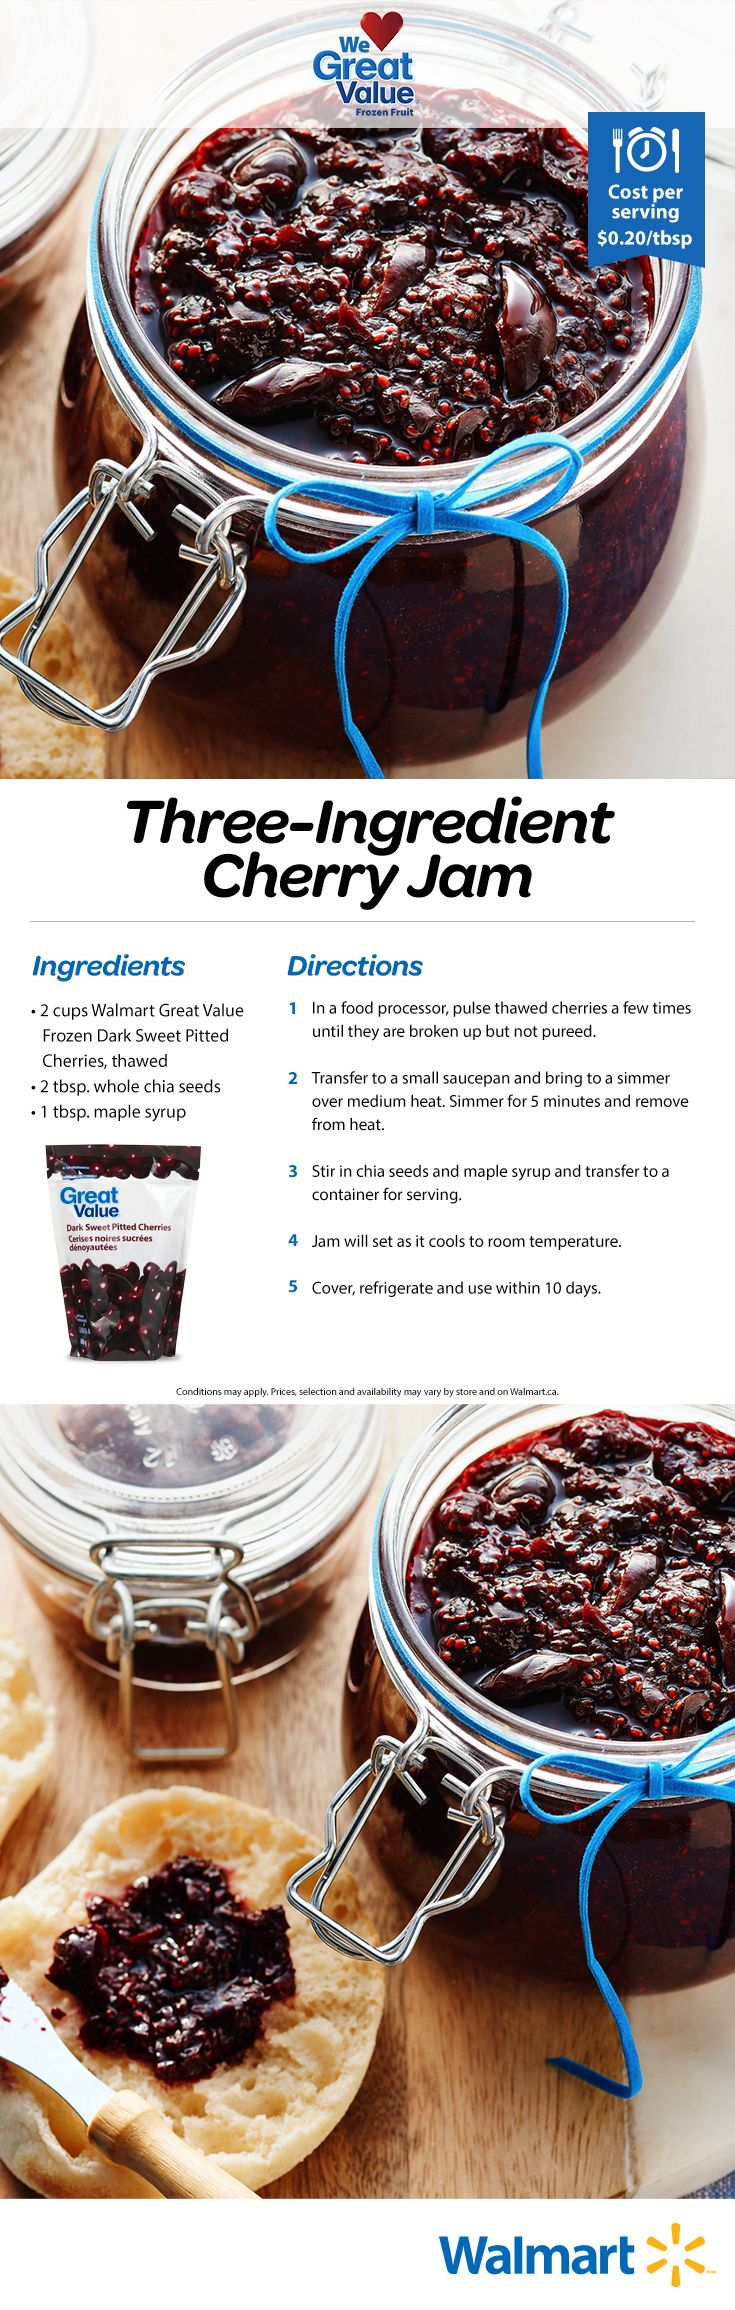 Making homemade jam won't take you a day in the kitchen if you follow this easy Great Value recipe! #jams #cherryjam #jamrecipes #realsolutions #toast #breakfast #WeLoveGreatValue